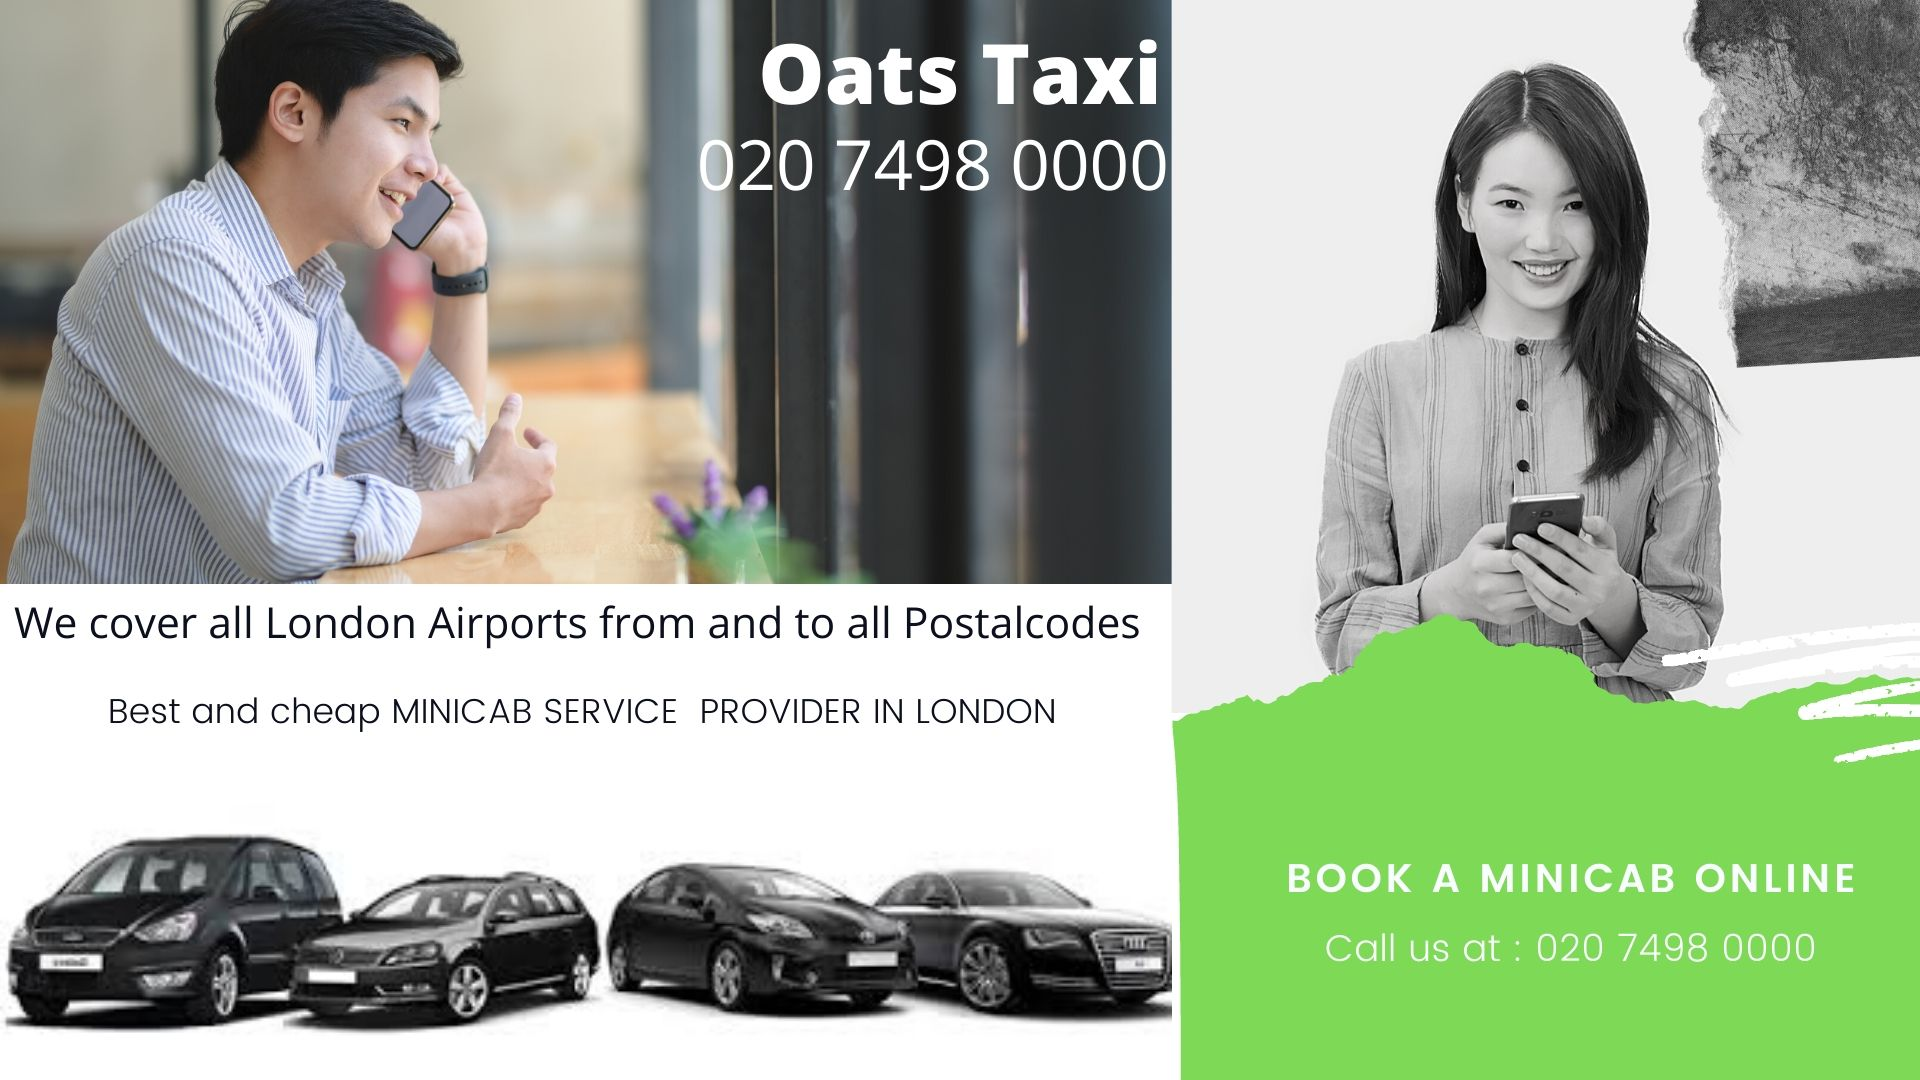 Minicab Office Near FAIRCHILD CLOSE, Battersea SW11, Minicab From Battersea SW11 To Gatwick Airport